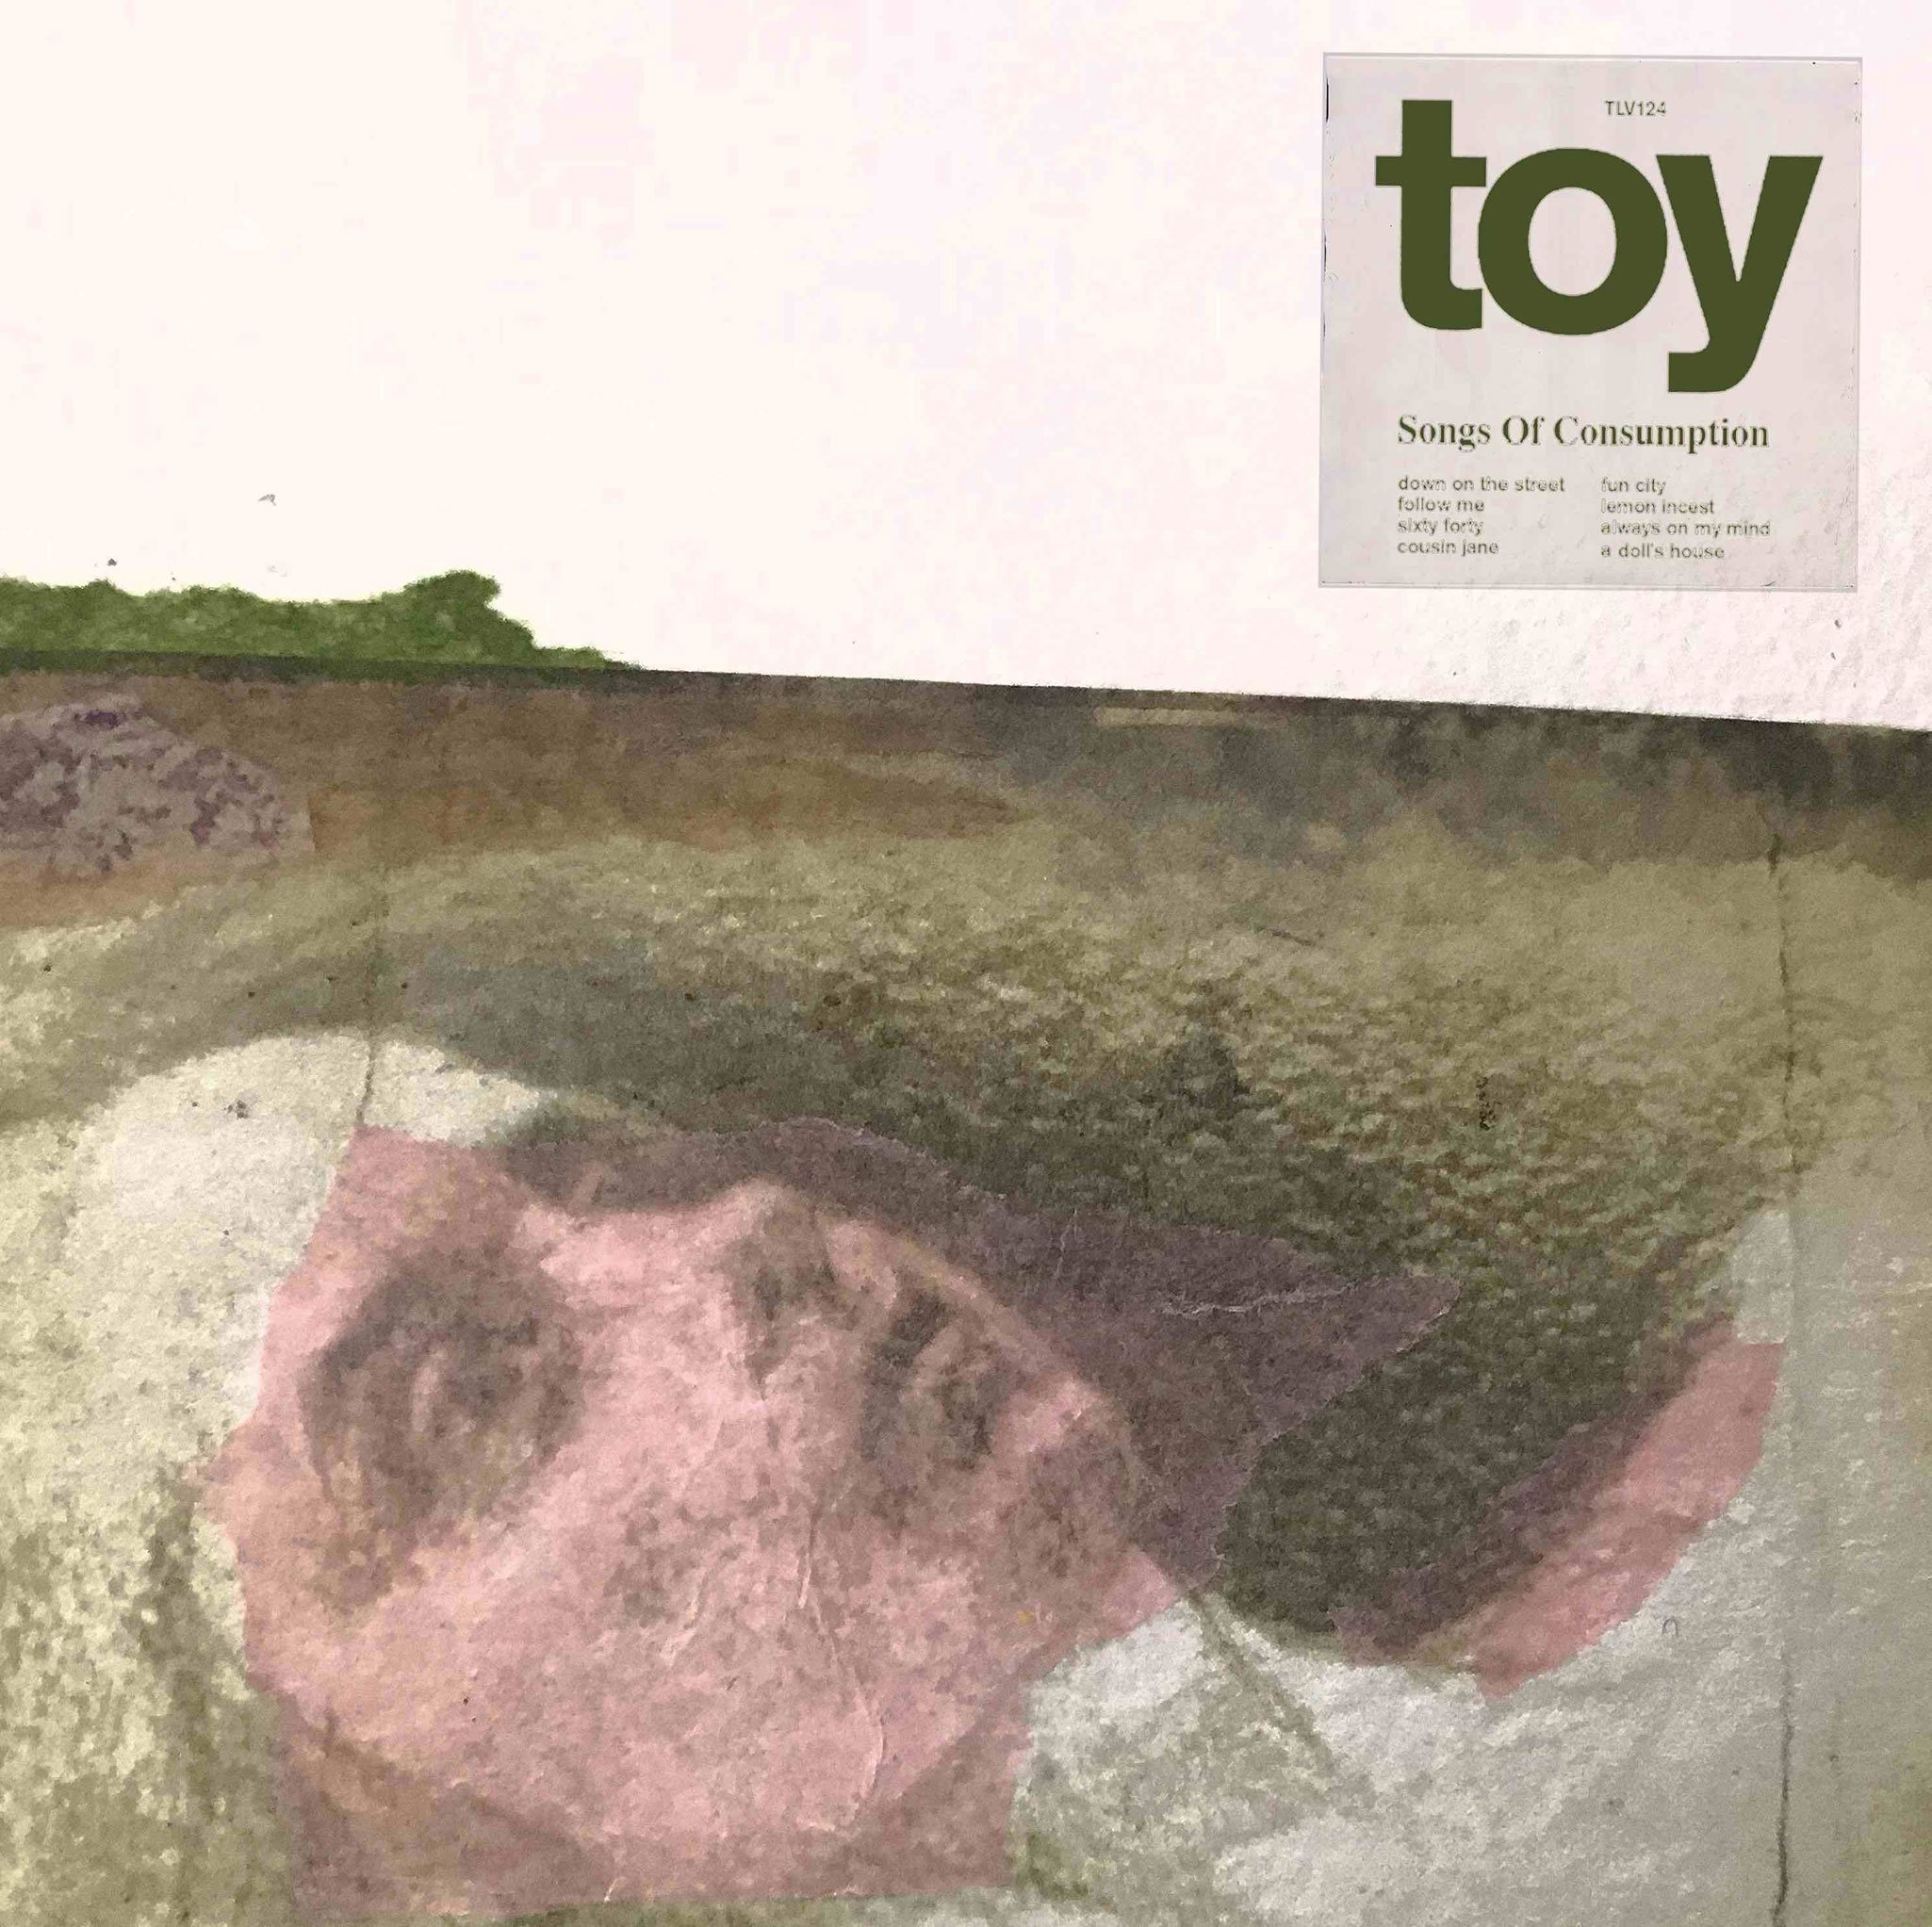 TOY announce 'Songs of Consumption' an 8-song collection of songs which have inspired the band